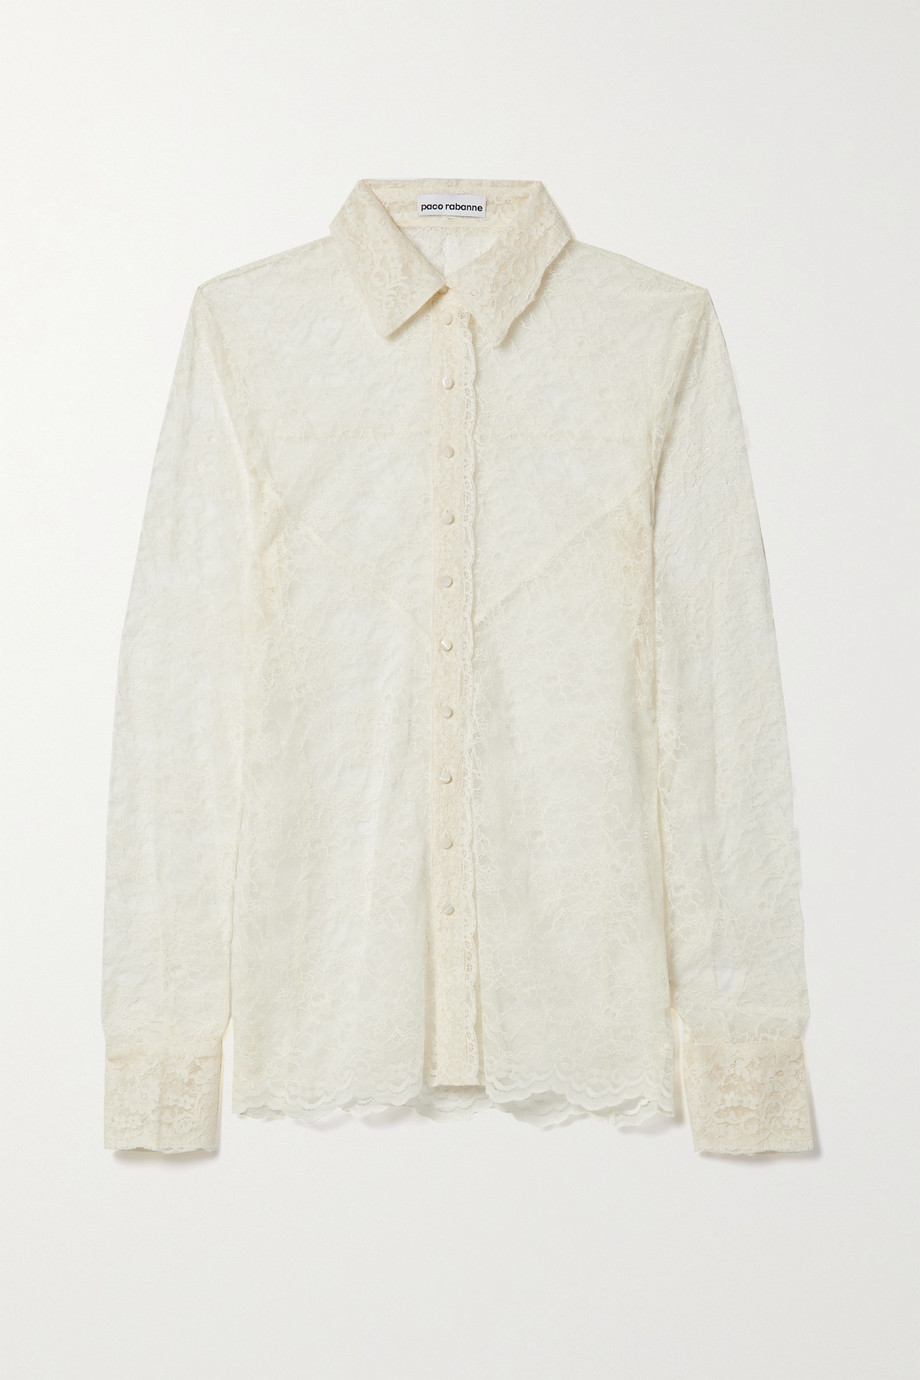 Paco Rabanne Corded lace shirt